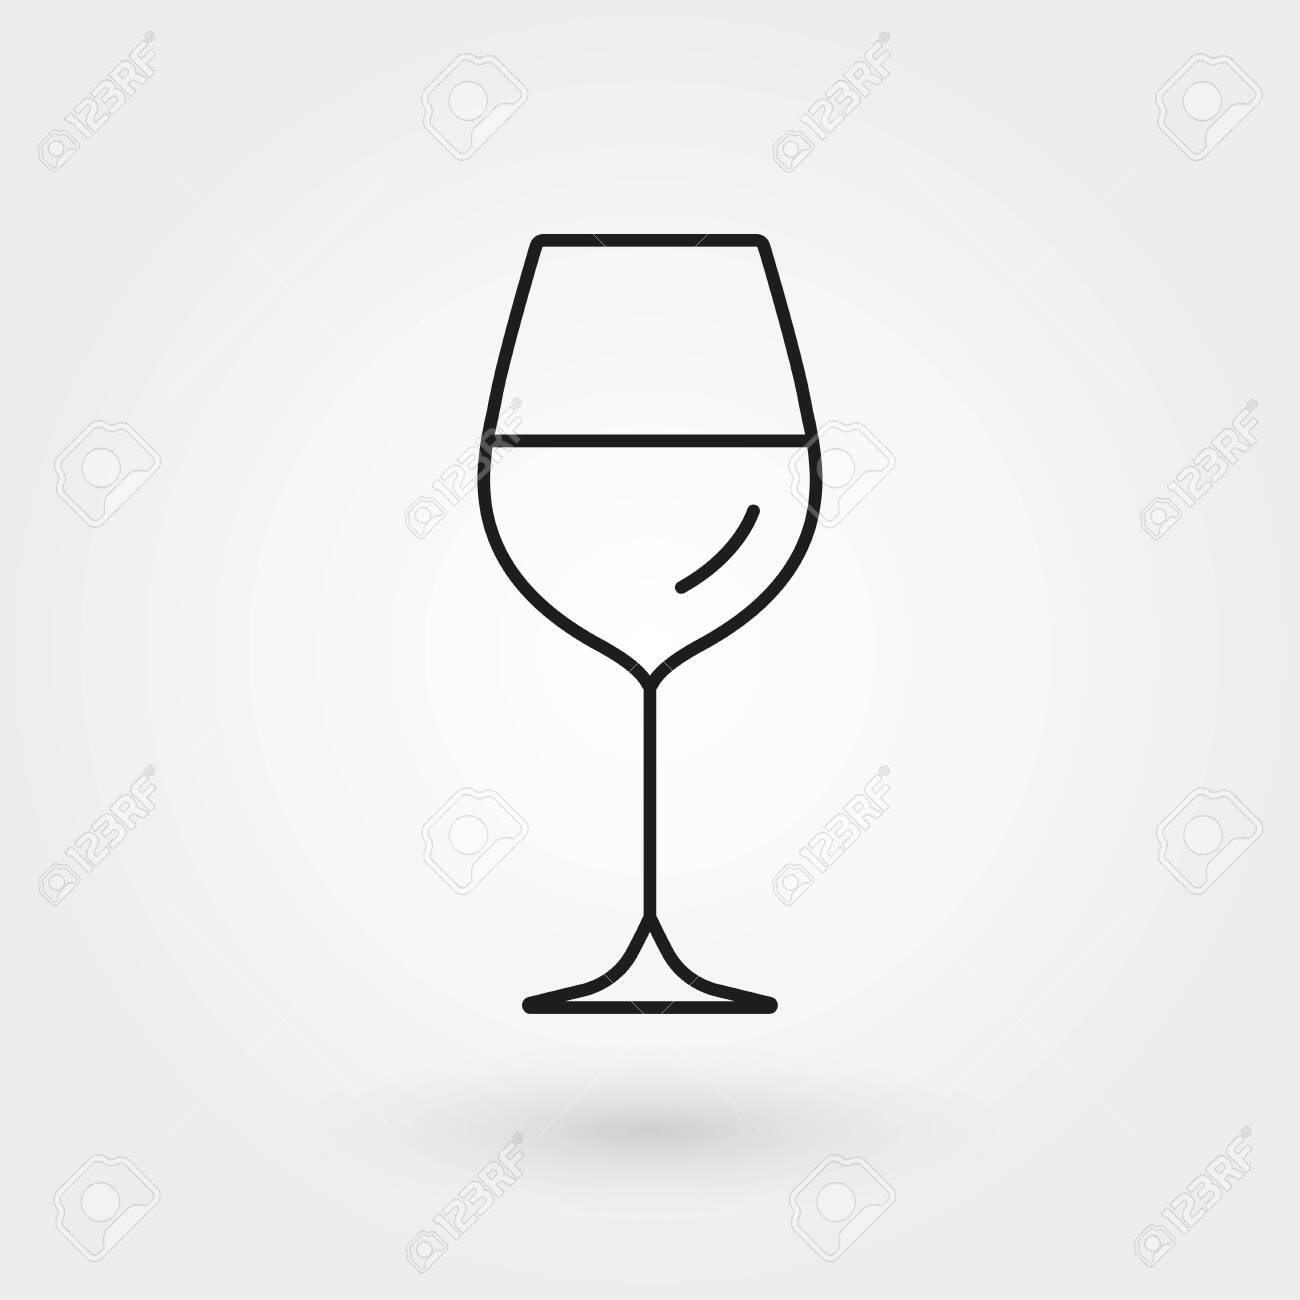 Wine glass outline icon. Vector illustration. - 128901474